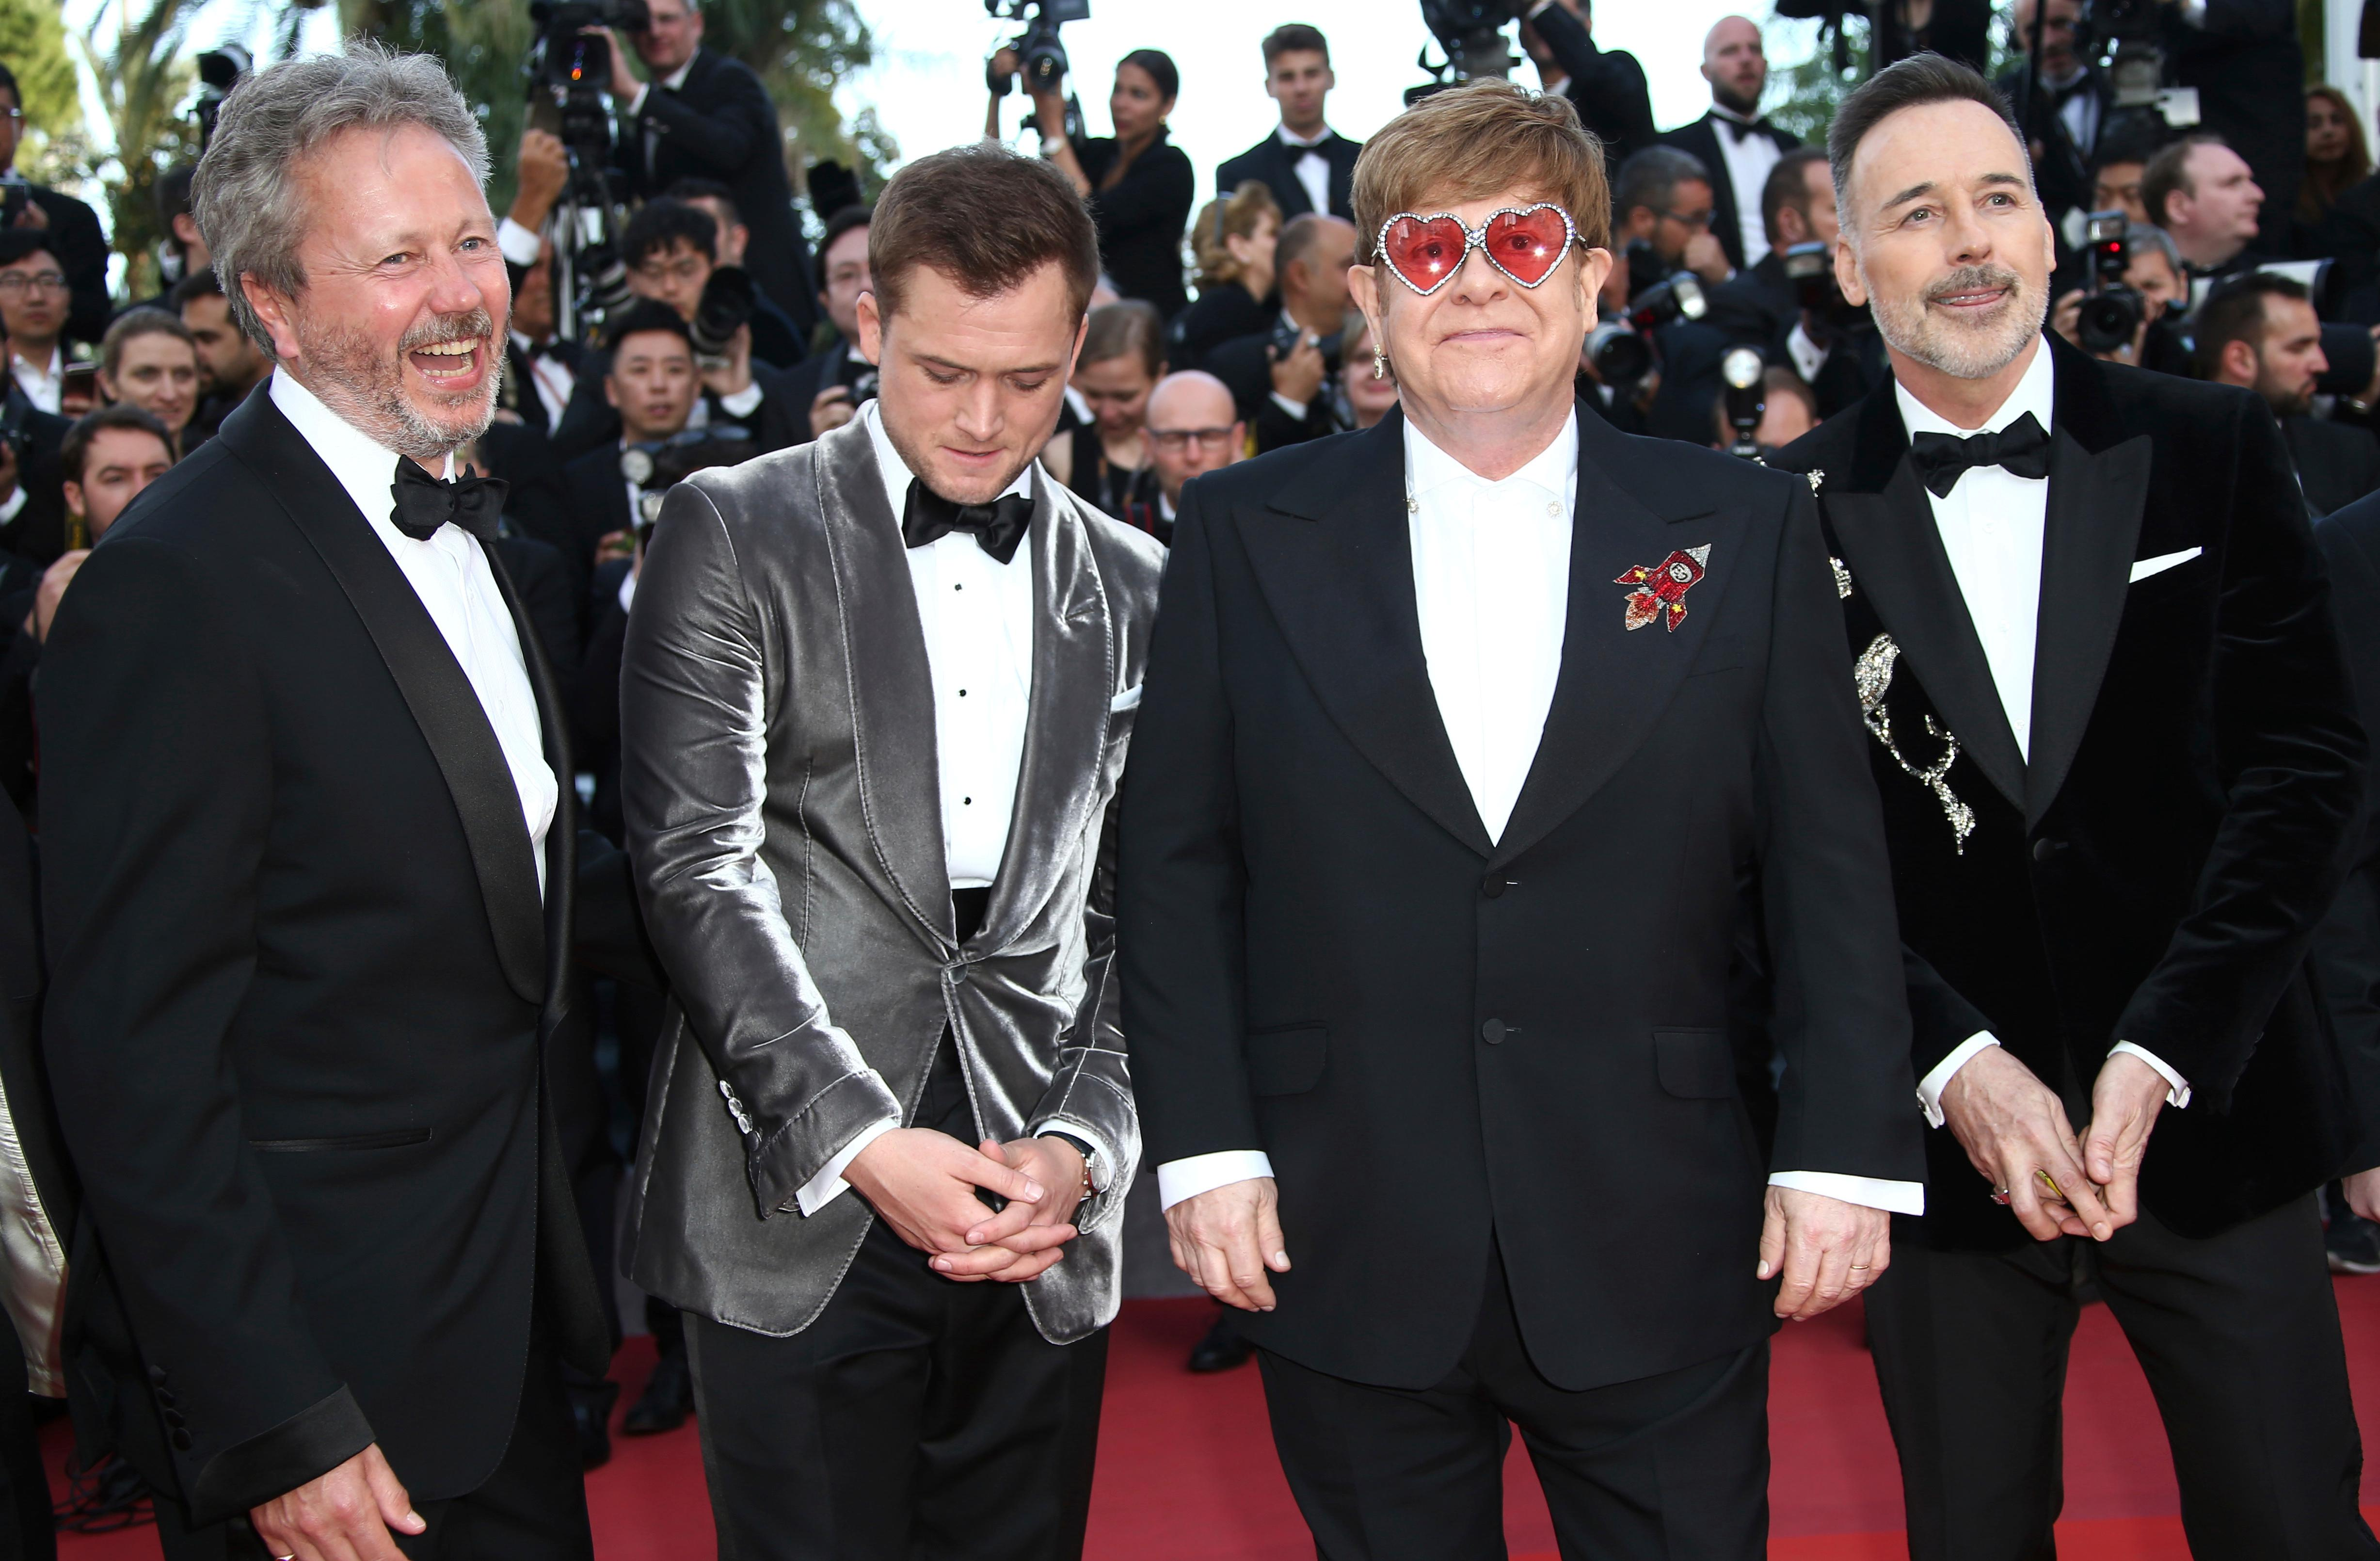 Producer Adam Bohling, actor Taron Egerton, singer Elton John and producer David Furnish pose for photographers upon arrival at the premiere of the film 'Rocketman' at the 72nd international film festival, Cannes, southern France, Thursday, May 16, 2019. (Photo by Joel C Ryan/Invision/AP)